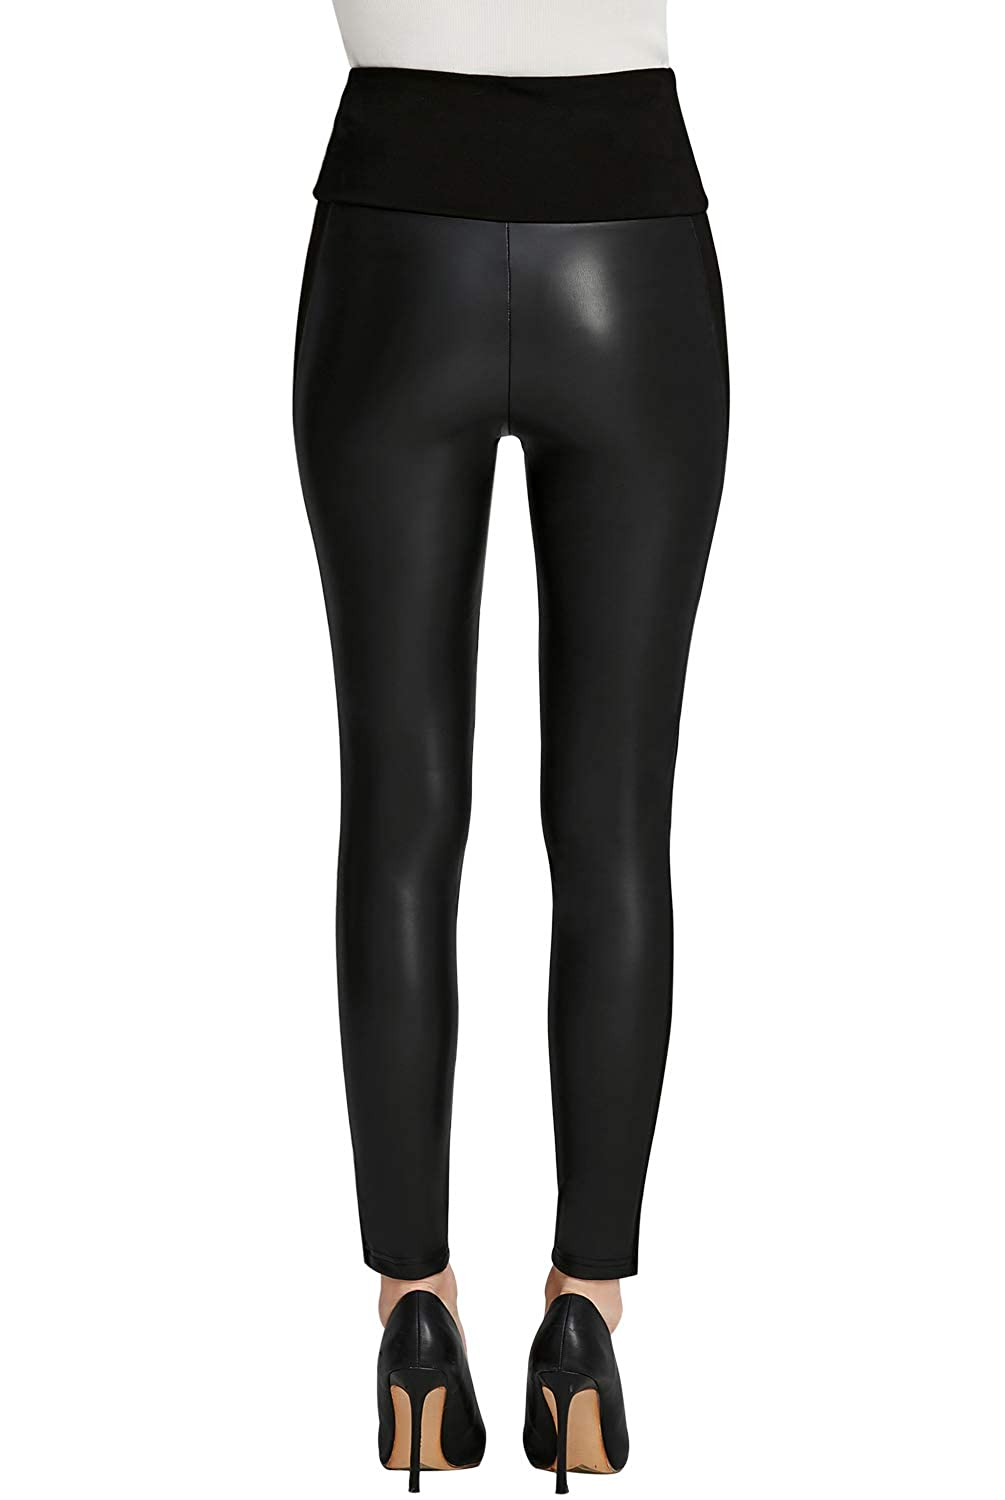 15f6d2b786a90 Everbellus Womens Black Faux Leather Leggings Girls High Waisted Sexy  Leather Pants at Amazon Women's Clothing store: